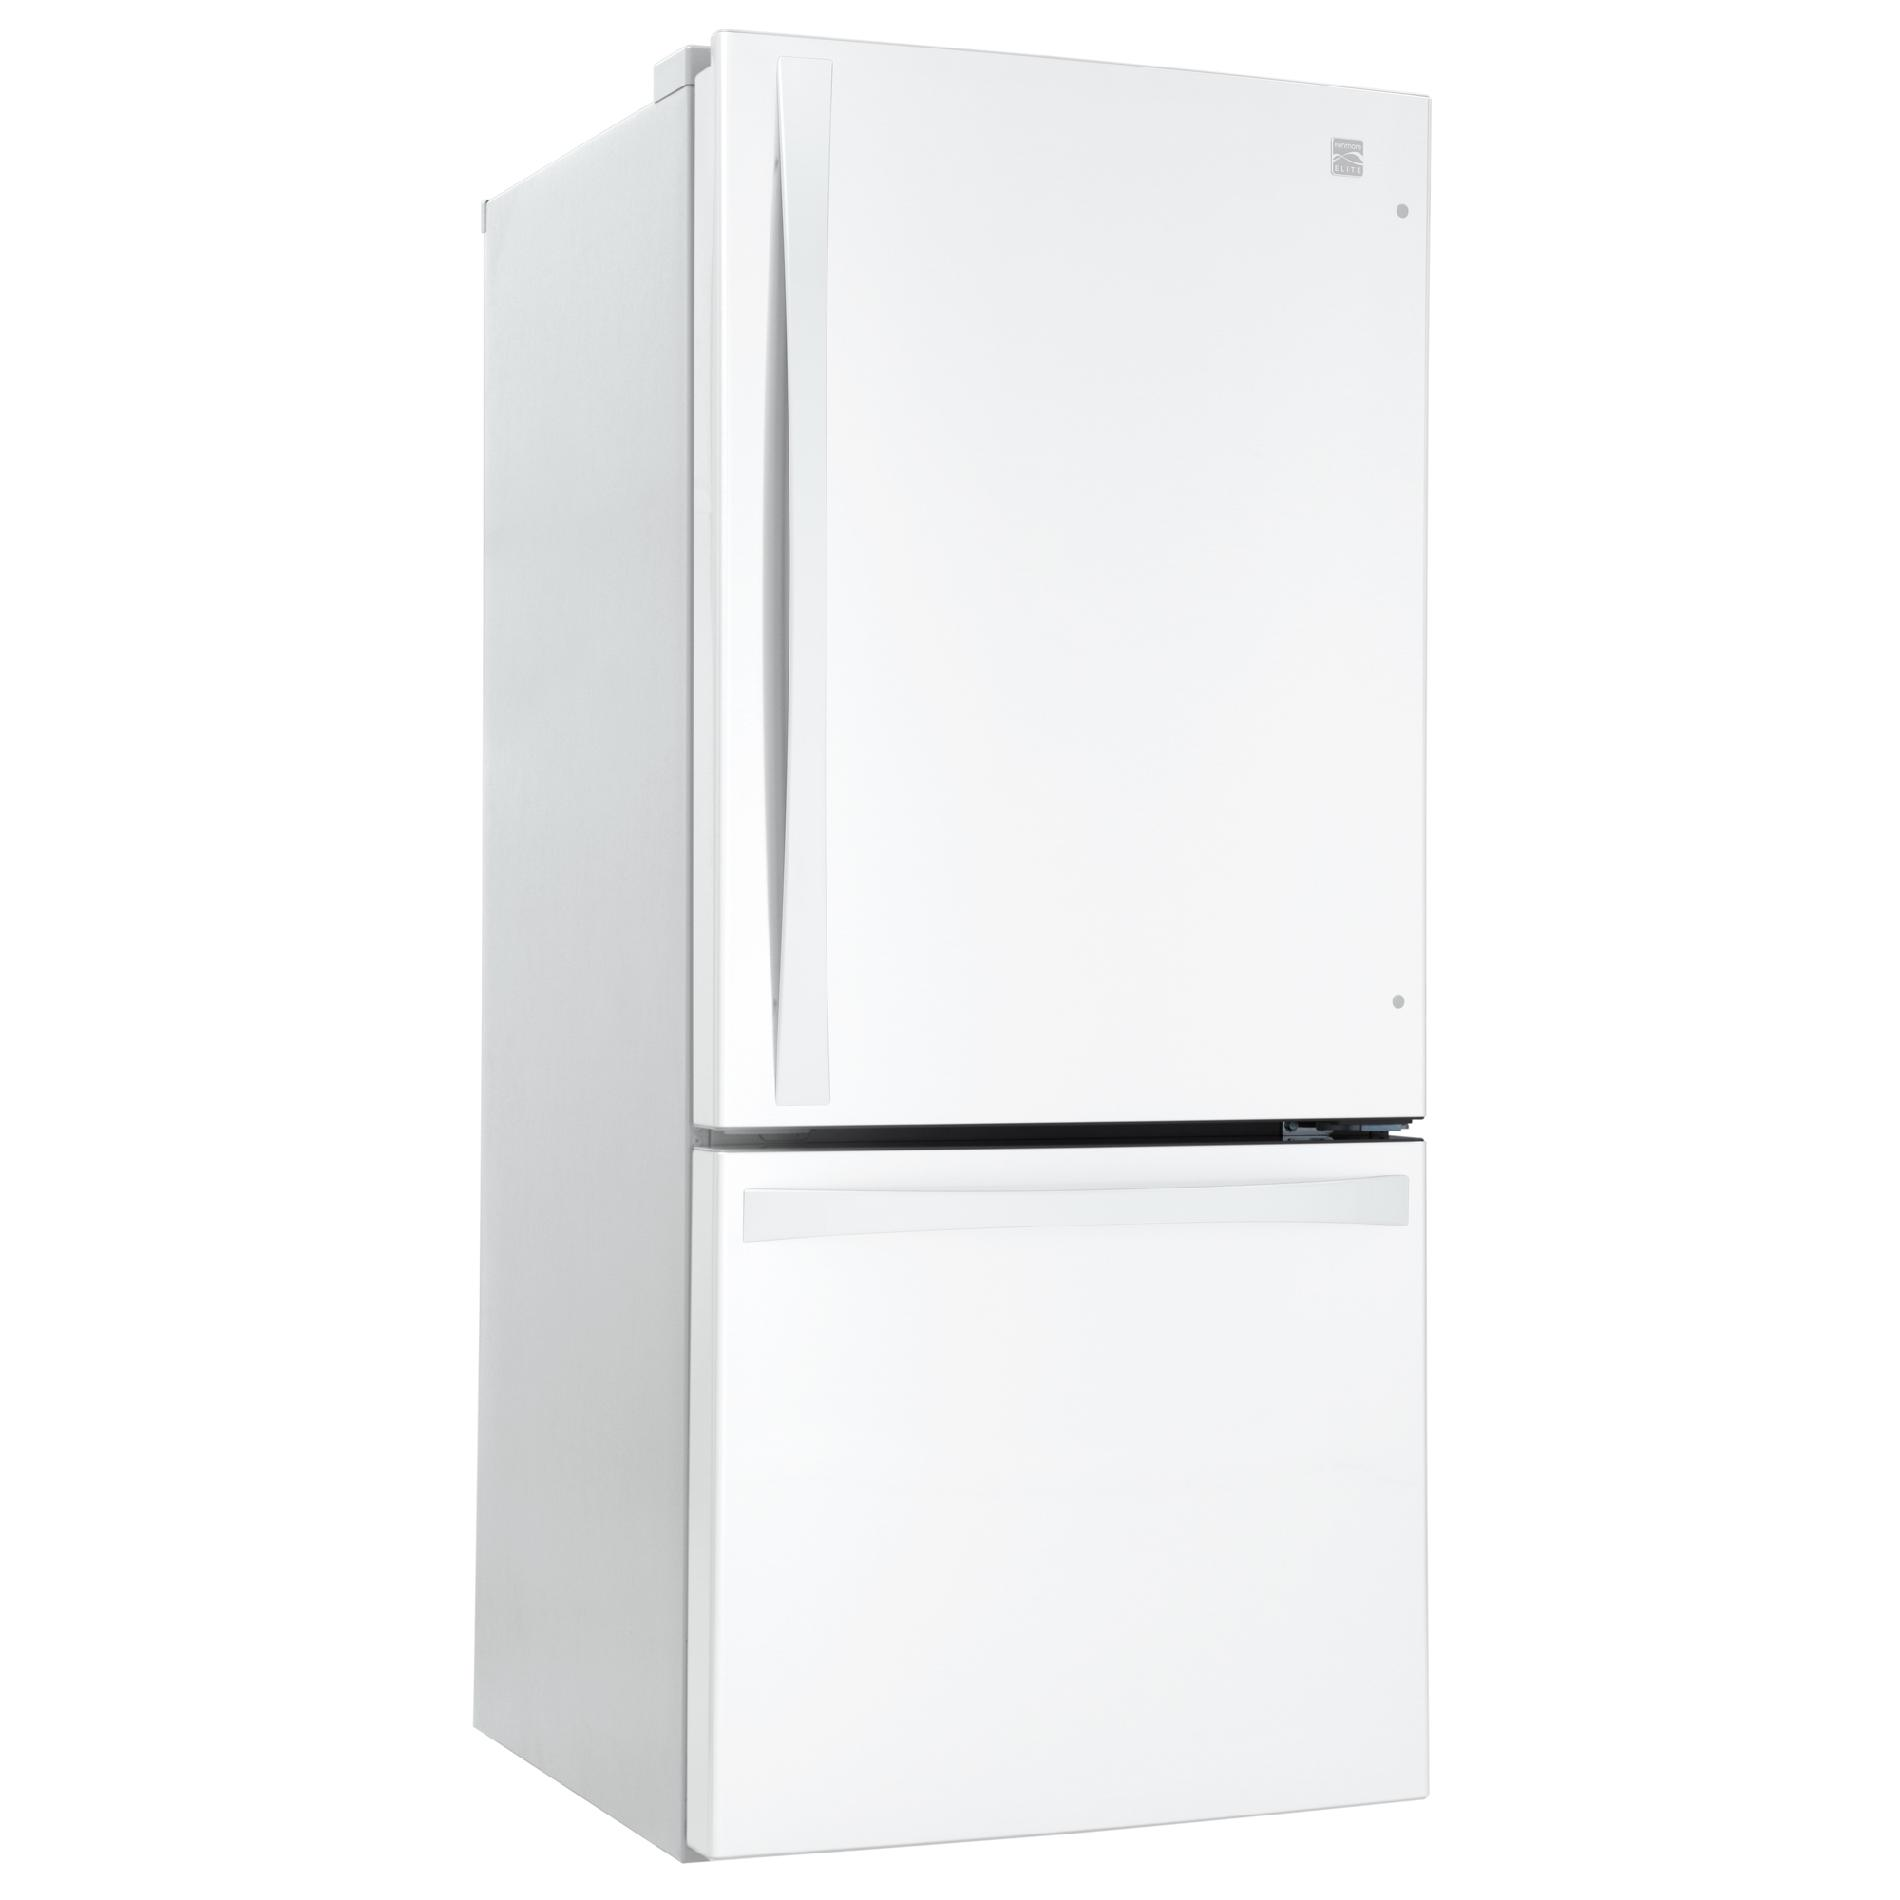 Kenmore Elite 22 cu. ft. Bottom-Freezer Refrigerator – White